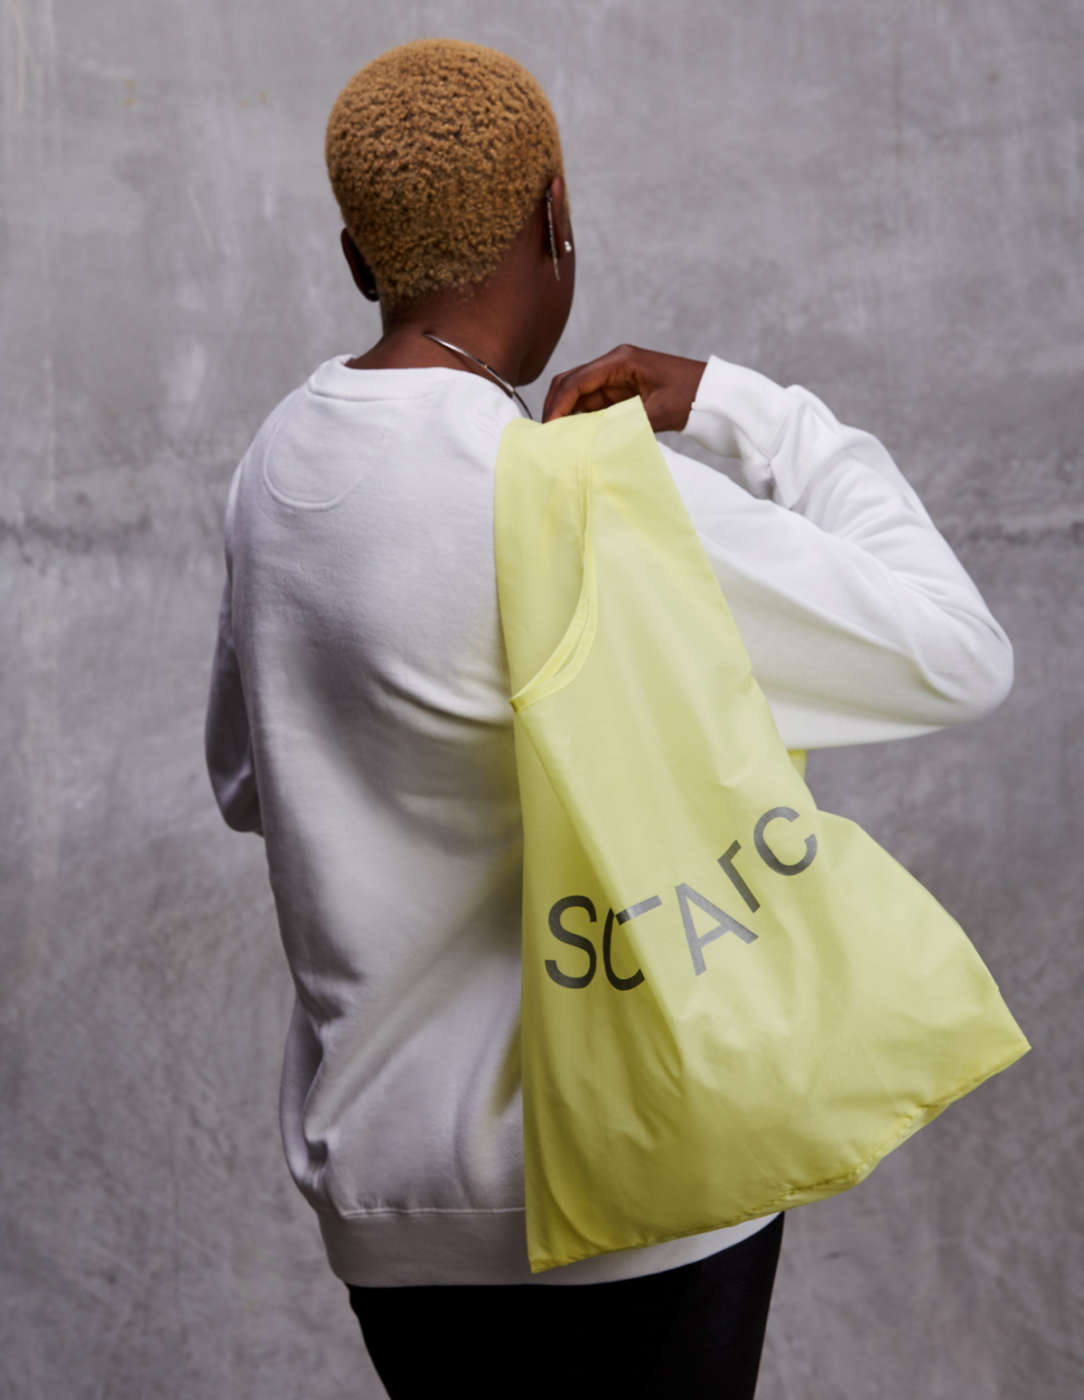 yellow sciarc bag on shoulder of person